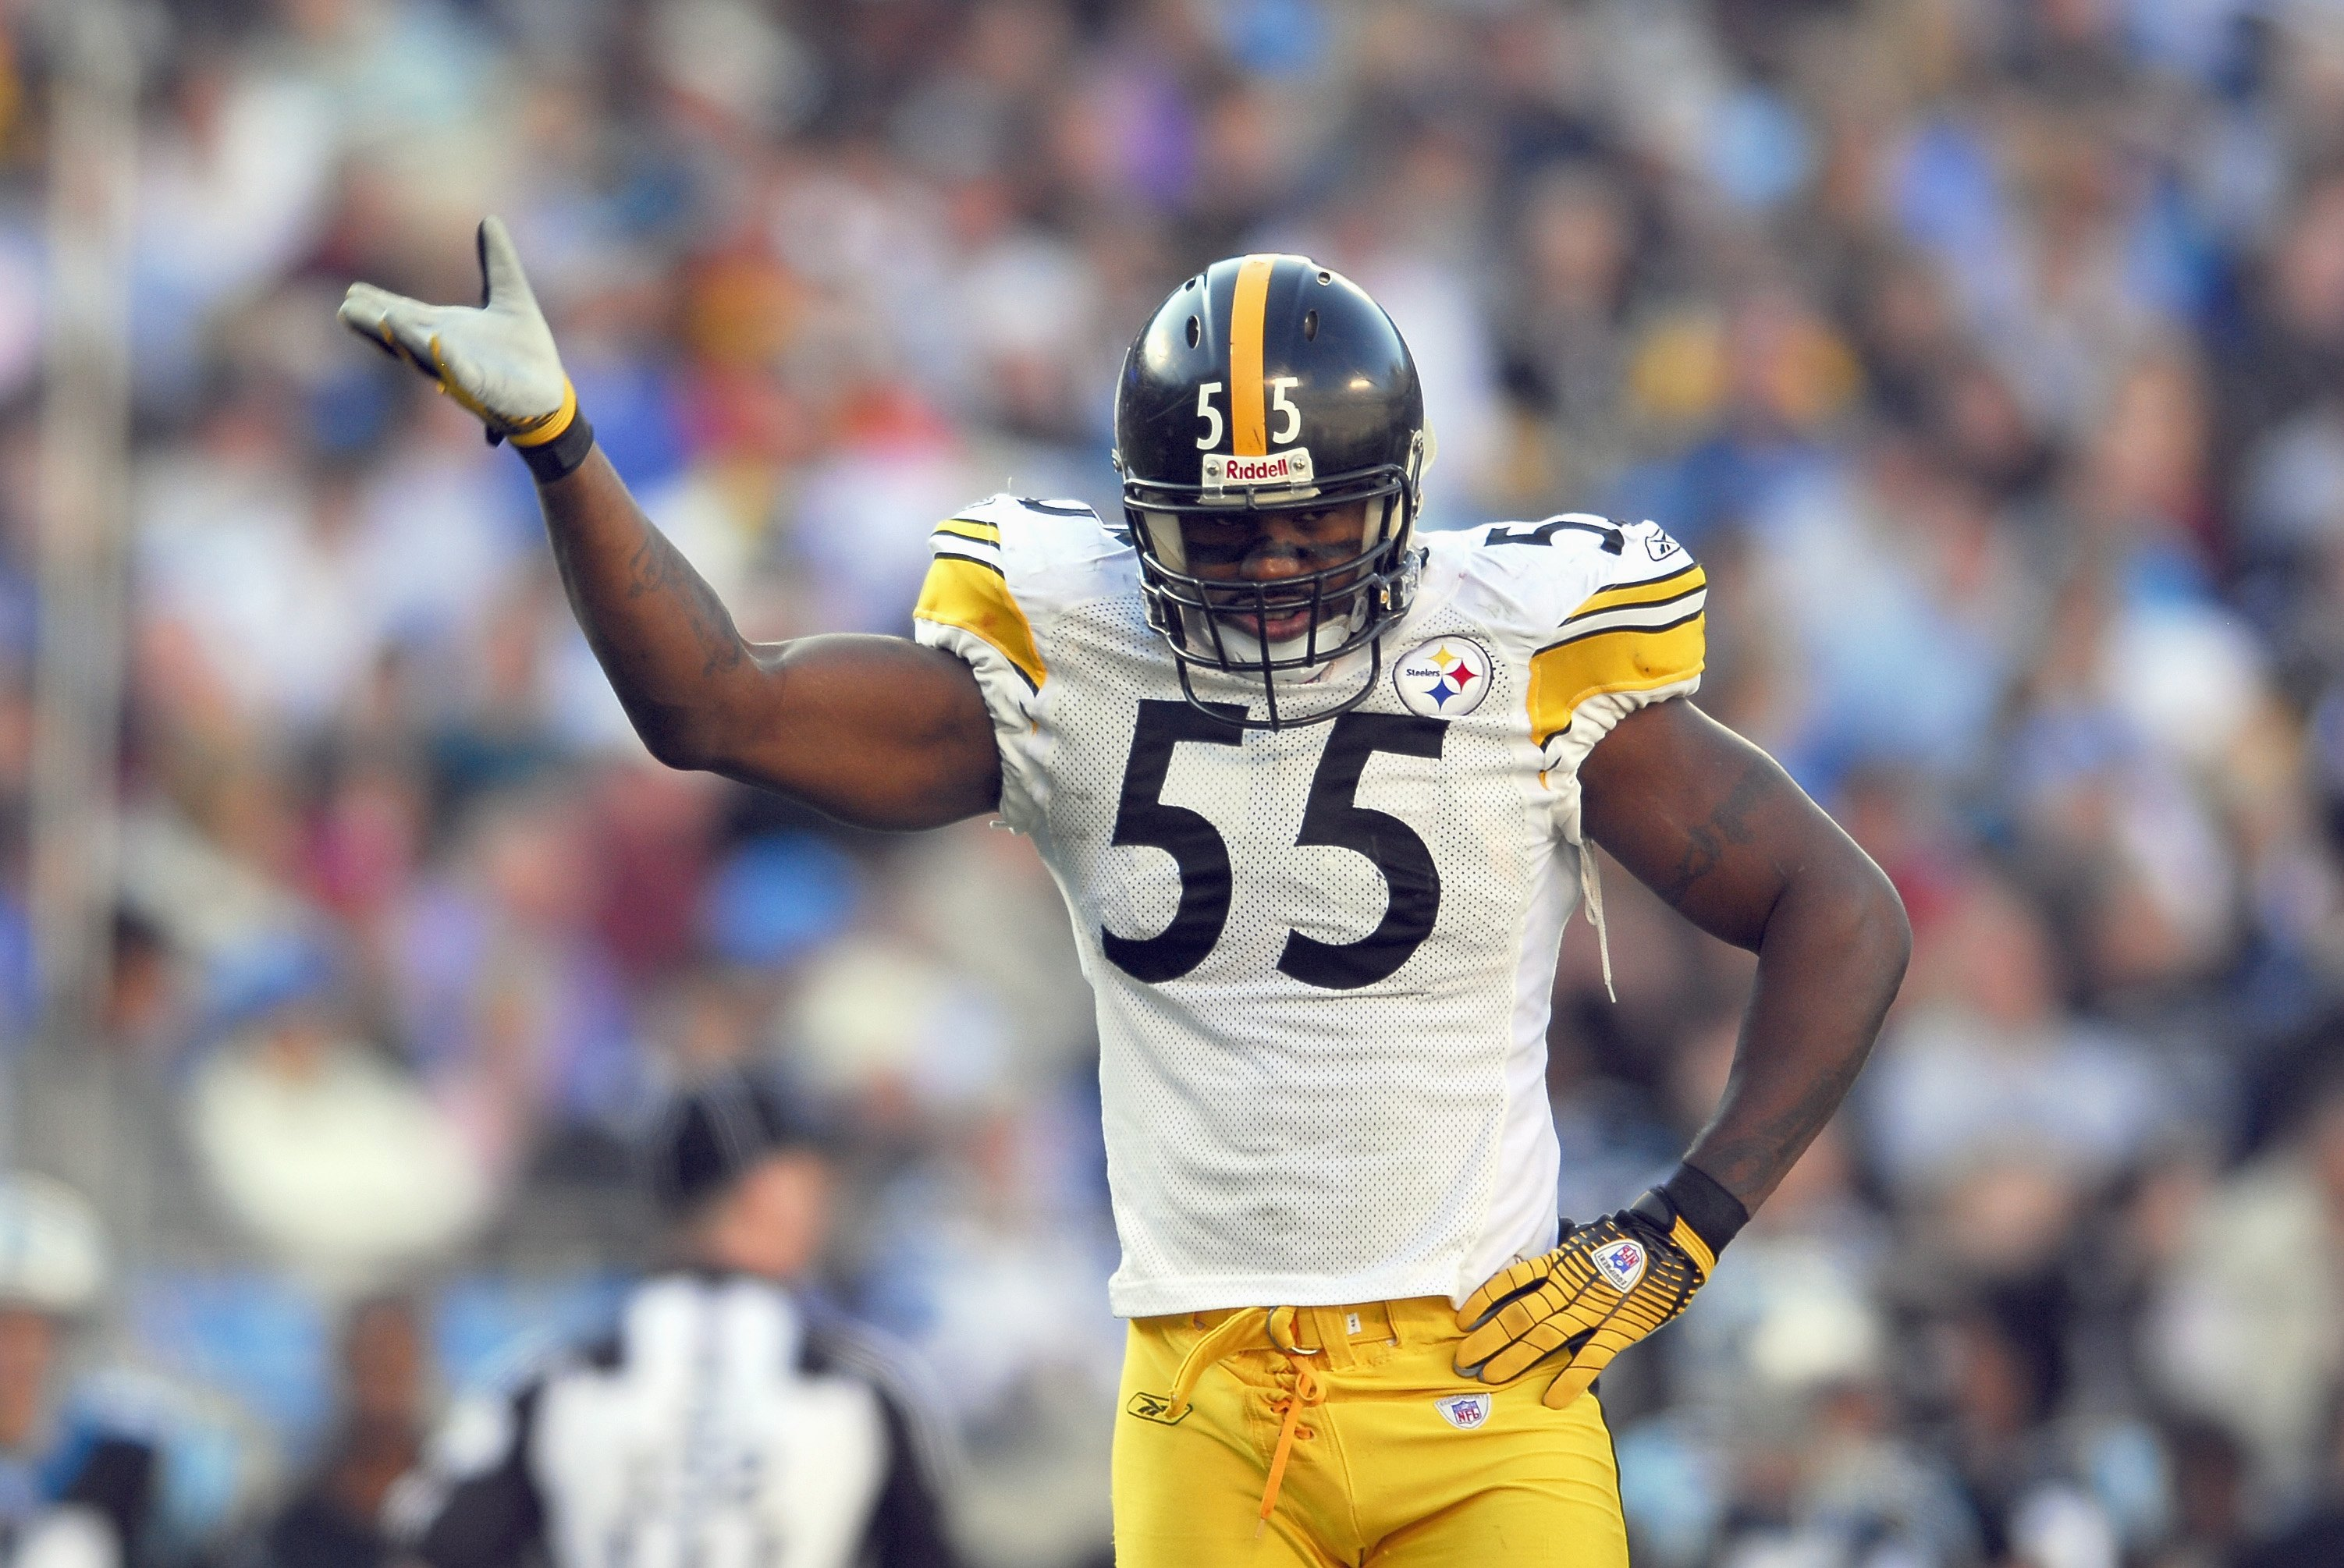 CHARLOTTE, NC - DECEMBER 17:  Joey Porter #55 of the Pittsburgh Steelers reacts during the game against the Carolina Panthers December 17, 2006 at Bank of America Stadium in Charlotte, North Carolina. Pittsburgh defeated Carolina 37-3. (Photo By Grant Hal